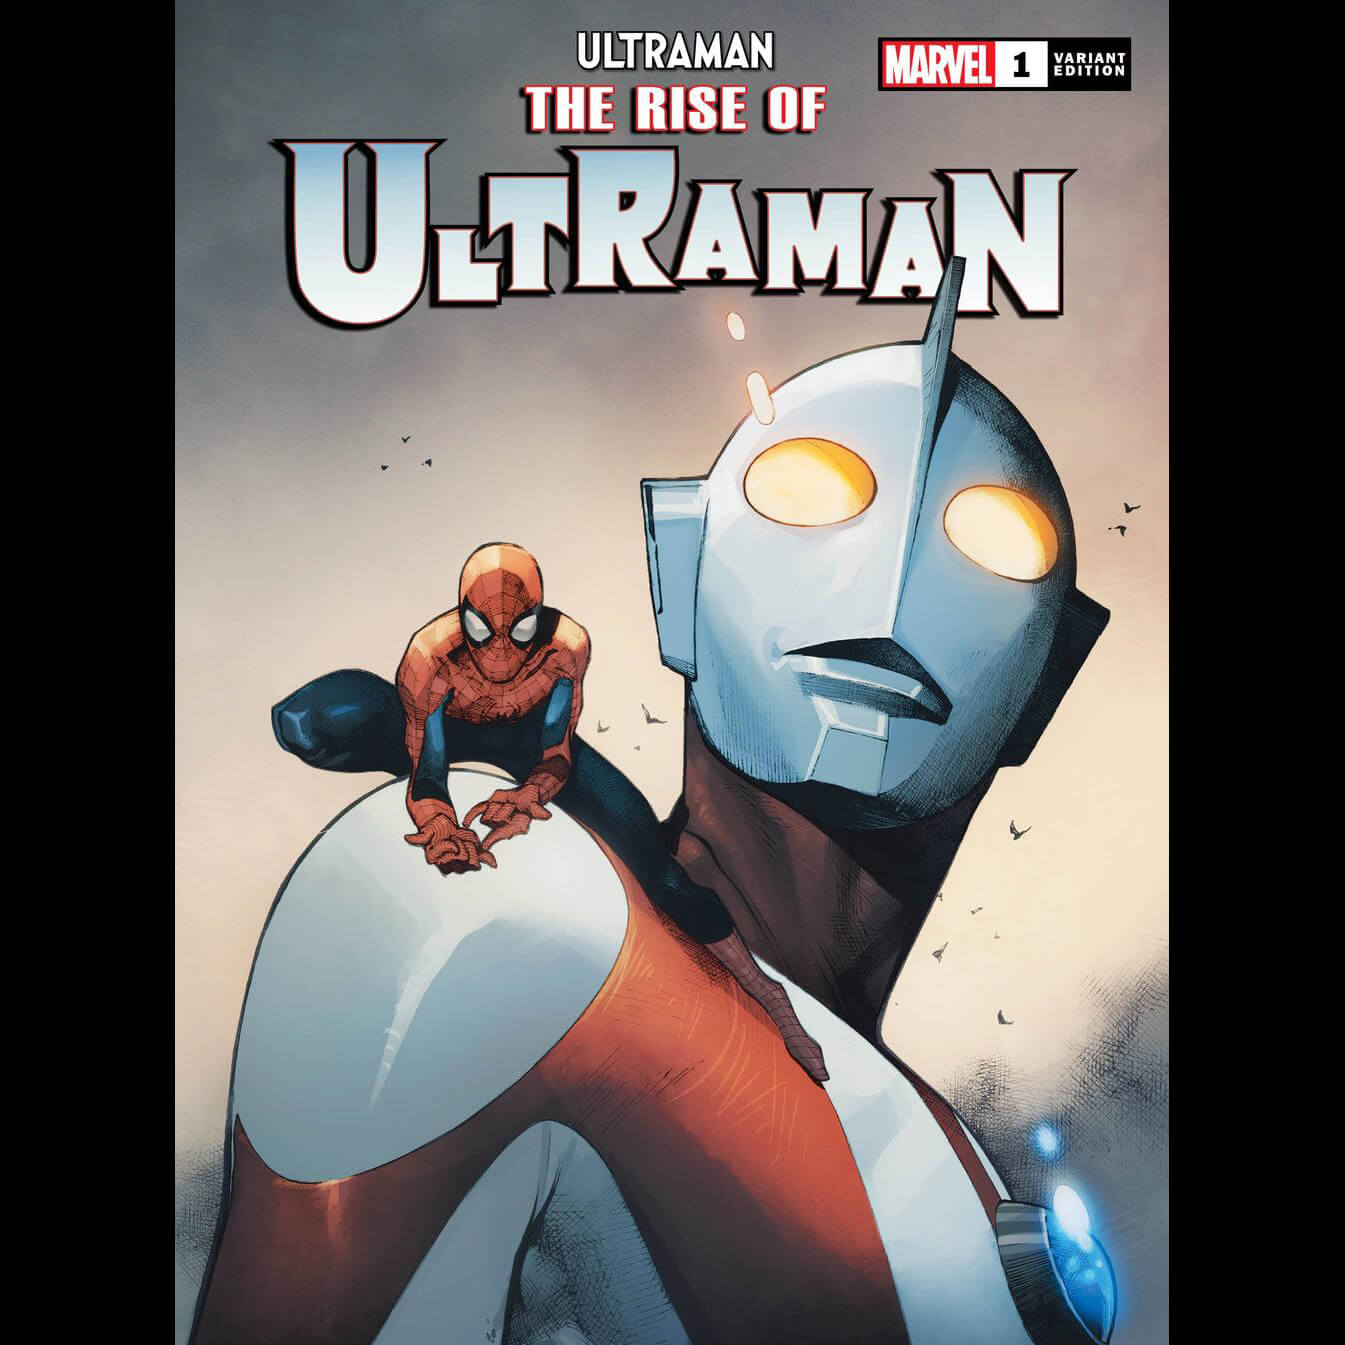 SPIDER-MAN TEAMS UP IN OLIVIER COIPEL'S VARIANT COVER FOR   'THE RISE OF ULTRAMAN' #1